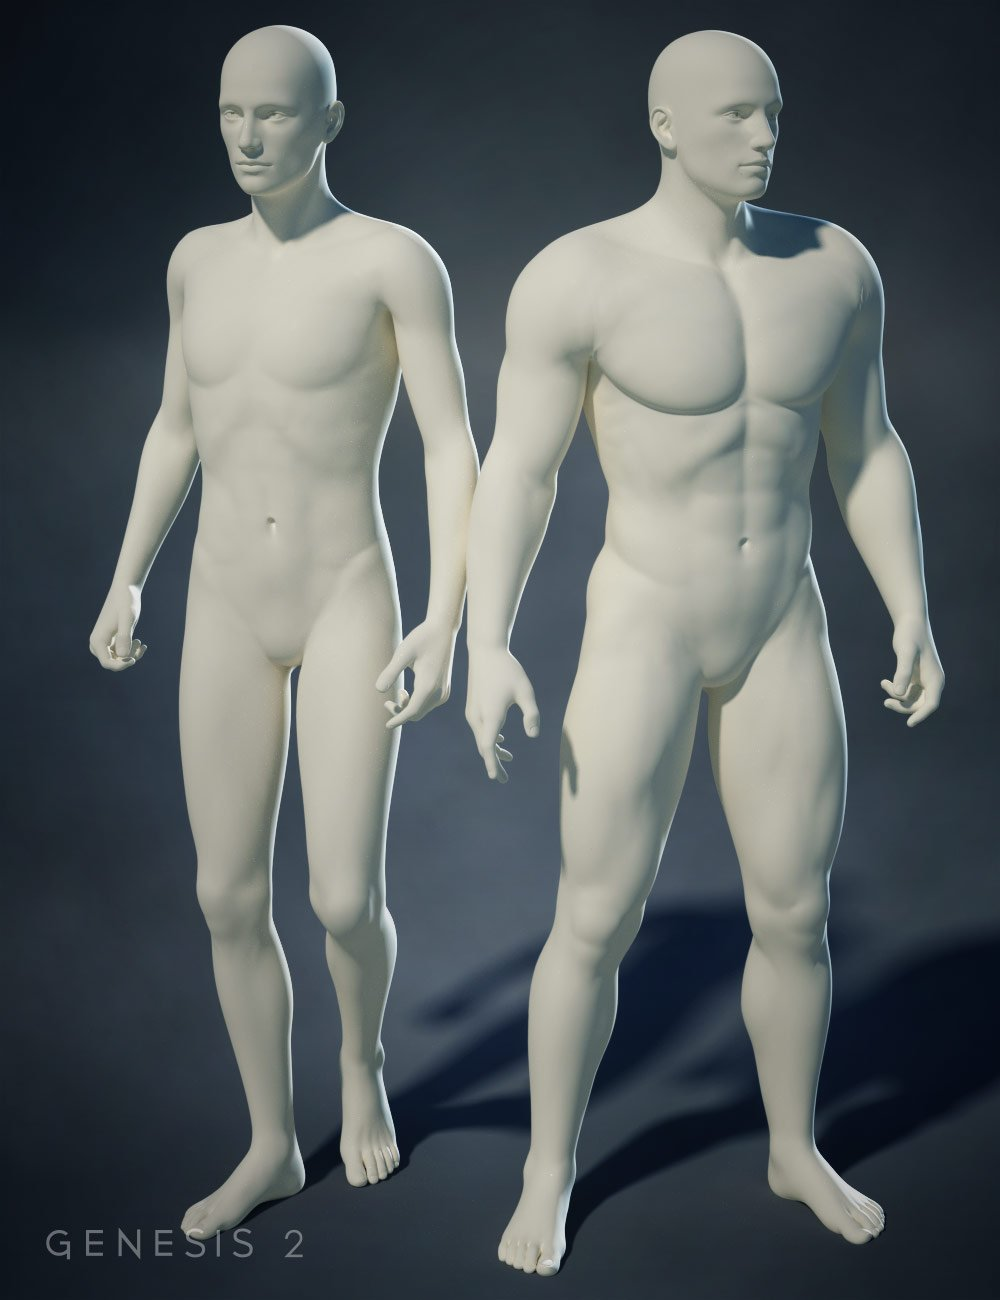 Genesis 2 Male Body Morphs by: , 3D Models by Daz 3D